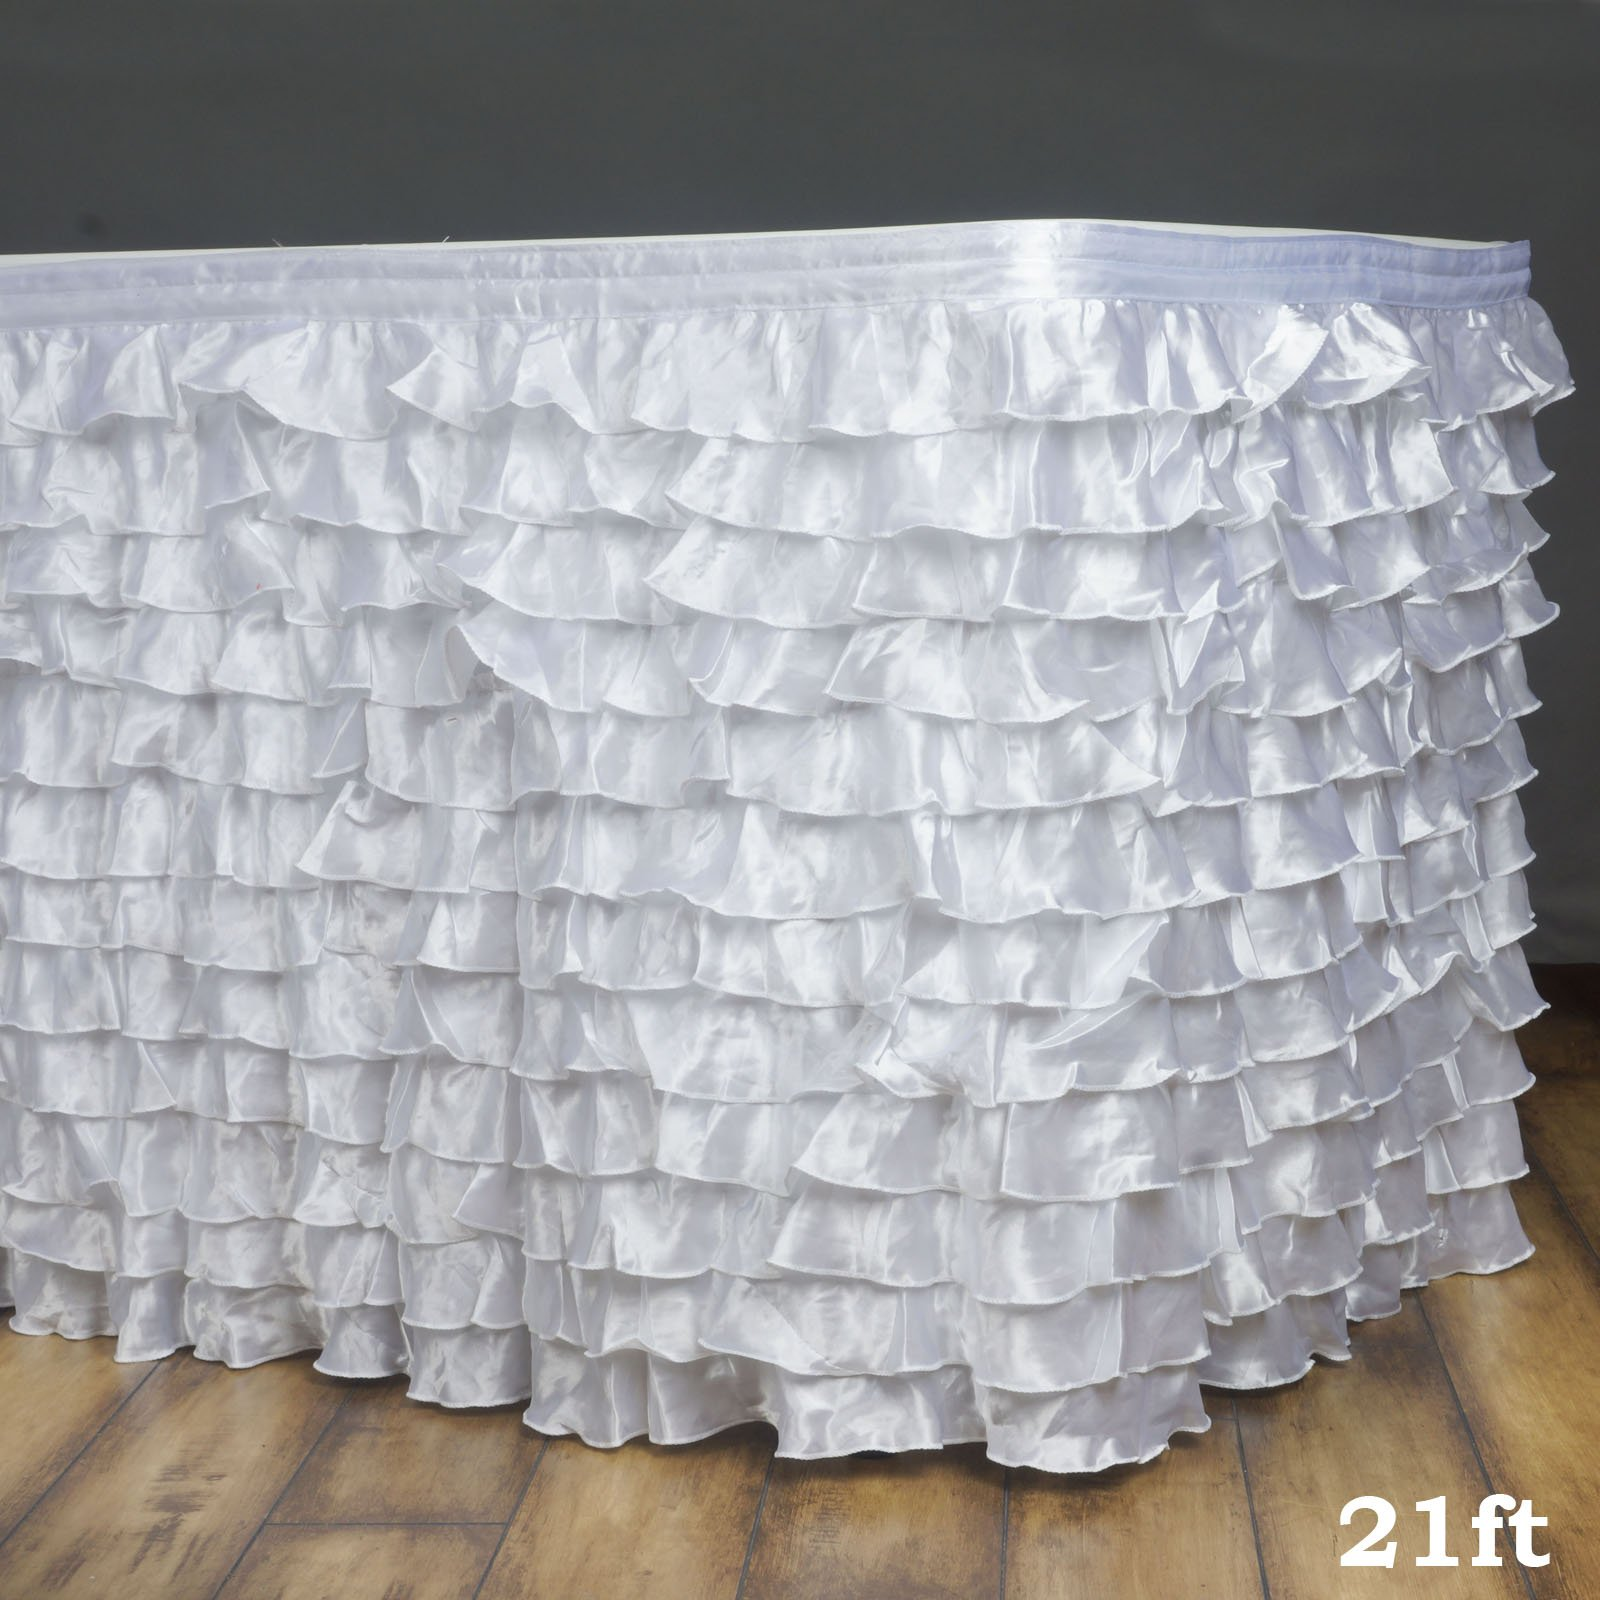 Efavormart 21ft Flamenca Satin Ruffle Table Skirt for Kitchen Dining Catering Wedding Birthday Party Decorations Events - White